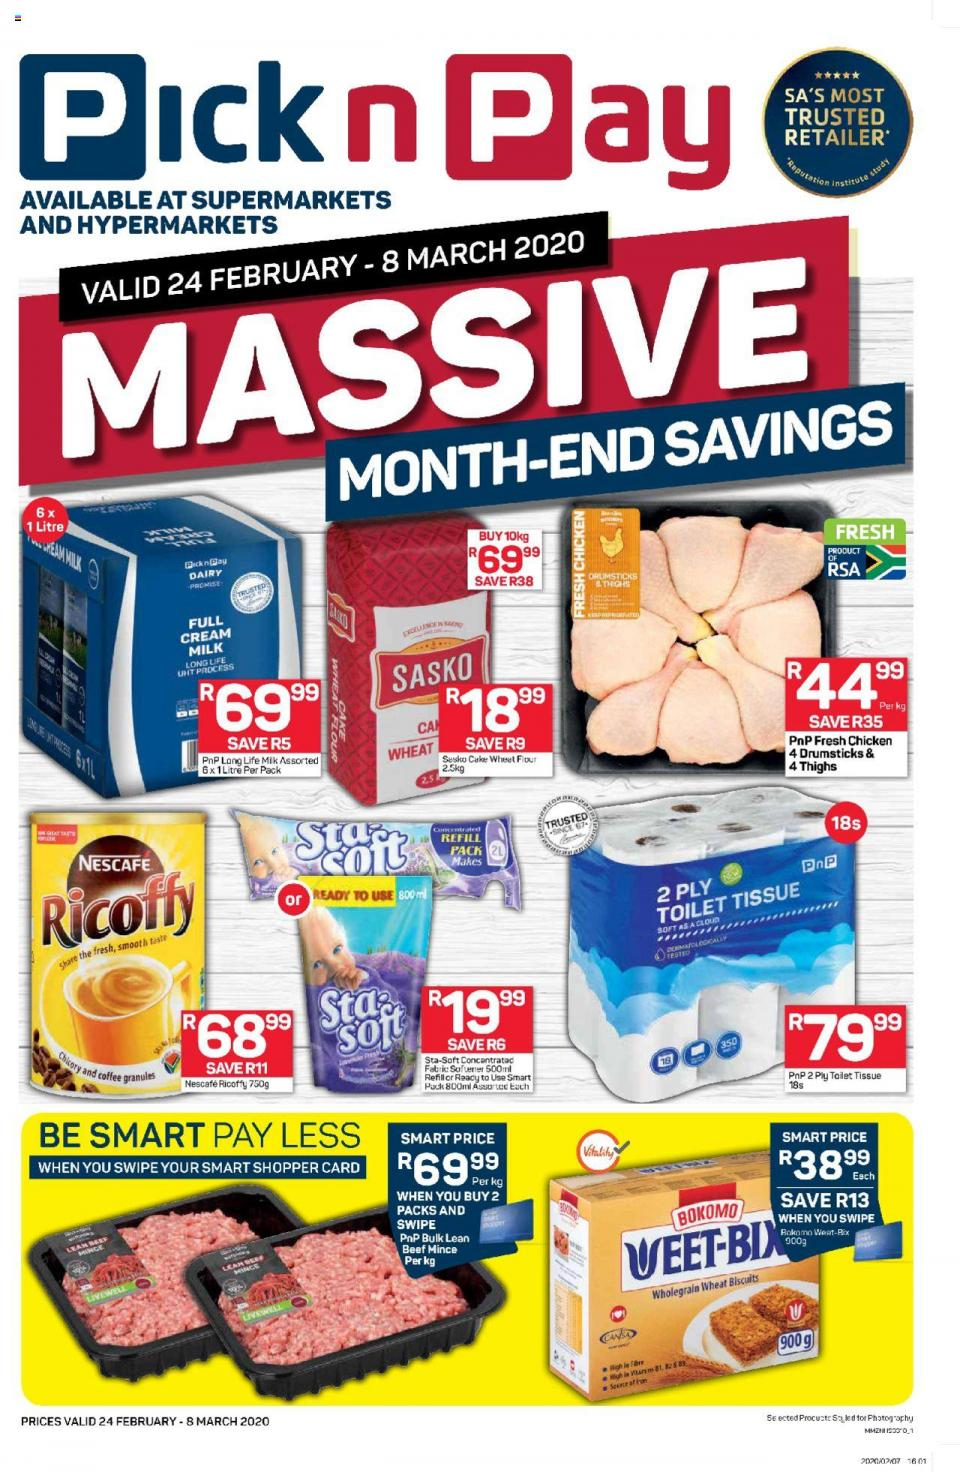 pick n pay specials massive month end savings 24 february 2020